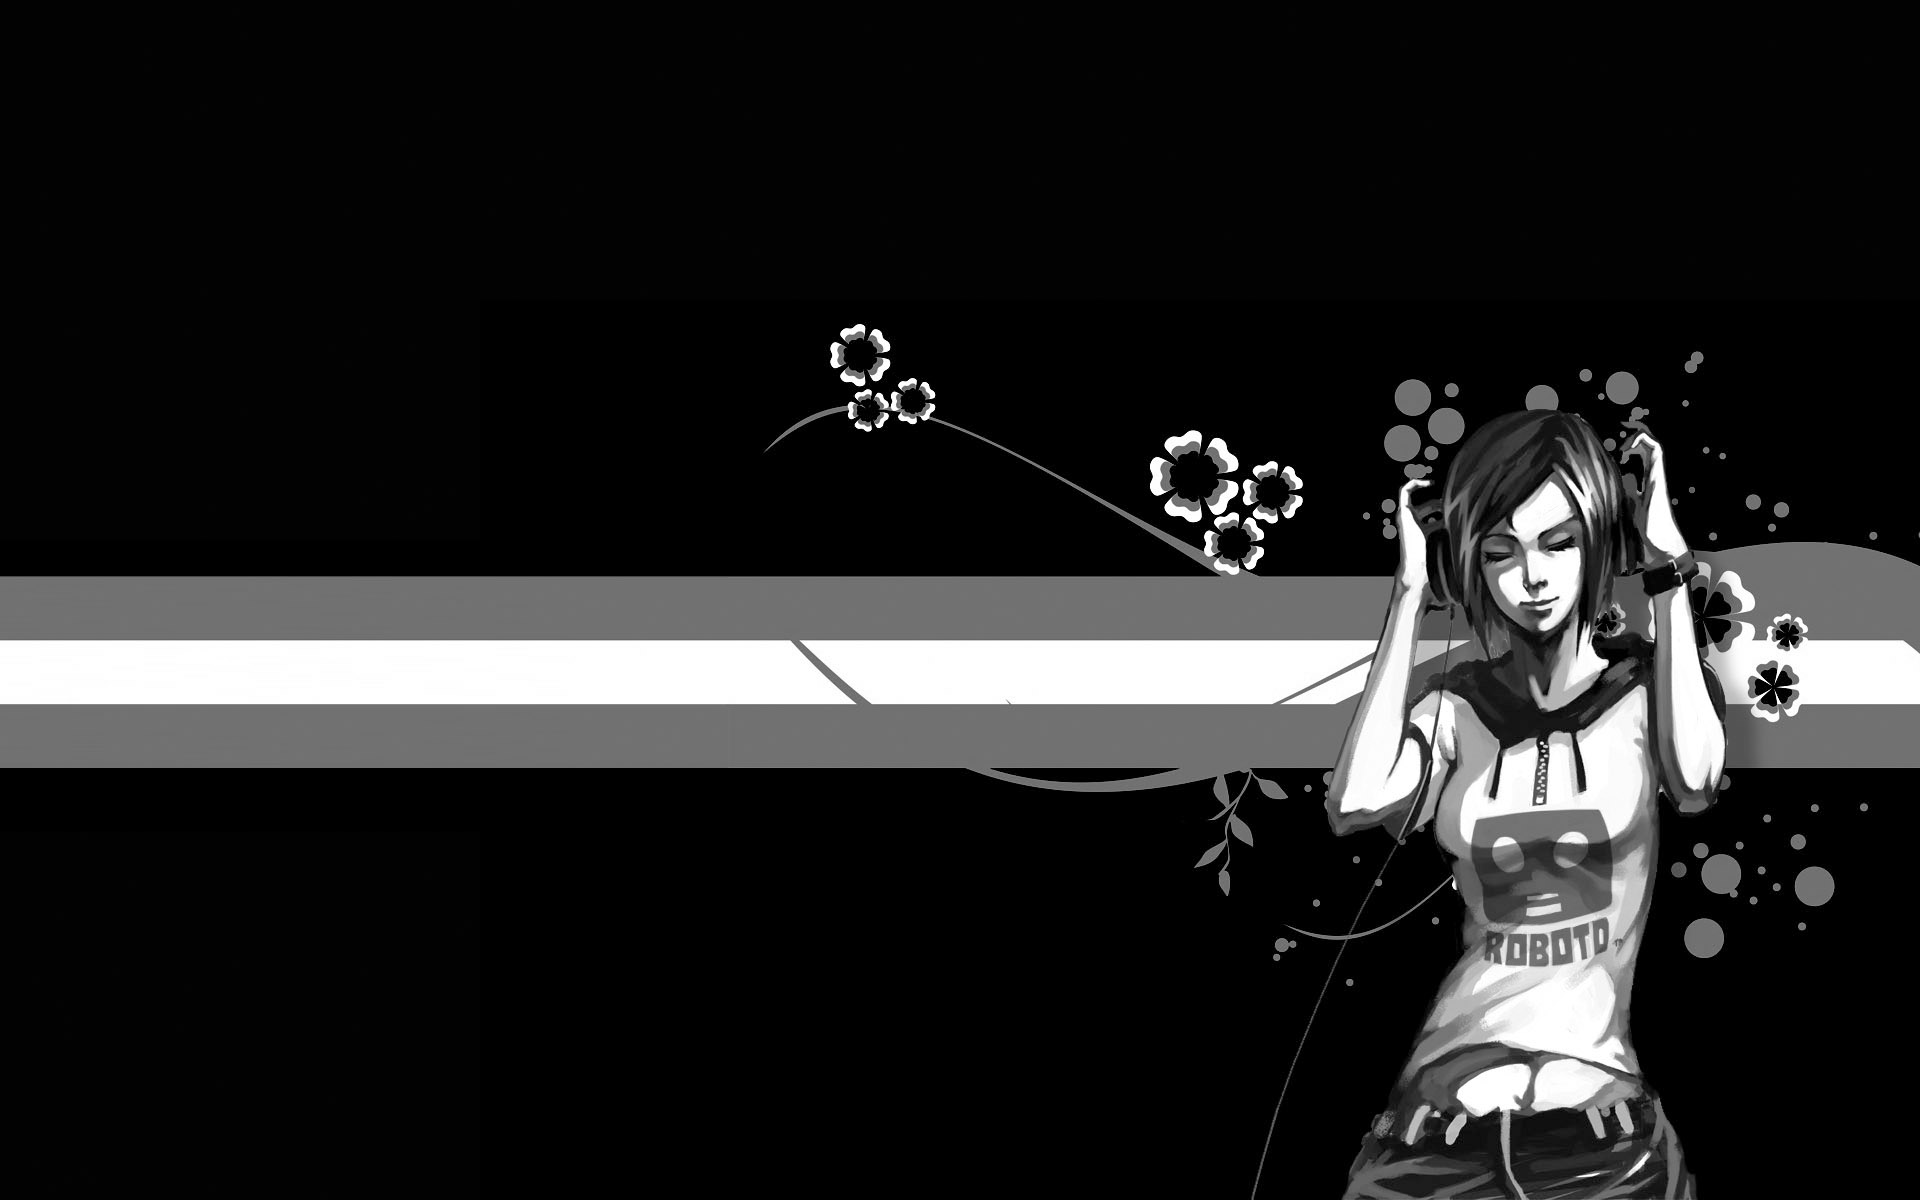 black and white abstract backgrounds flowers art designs wallpapers 1920x1200